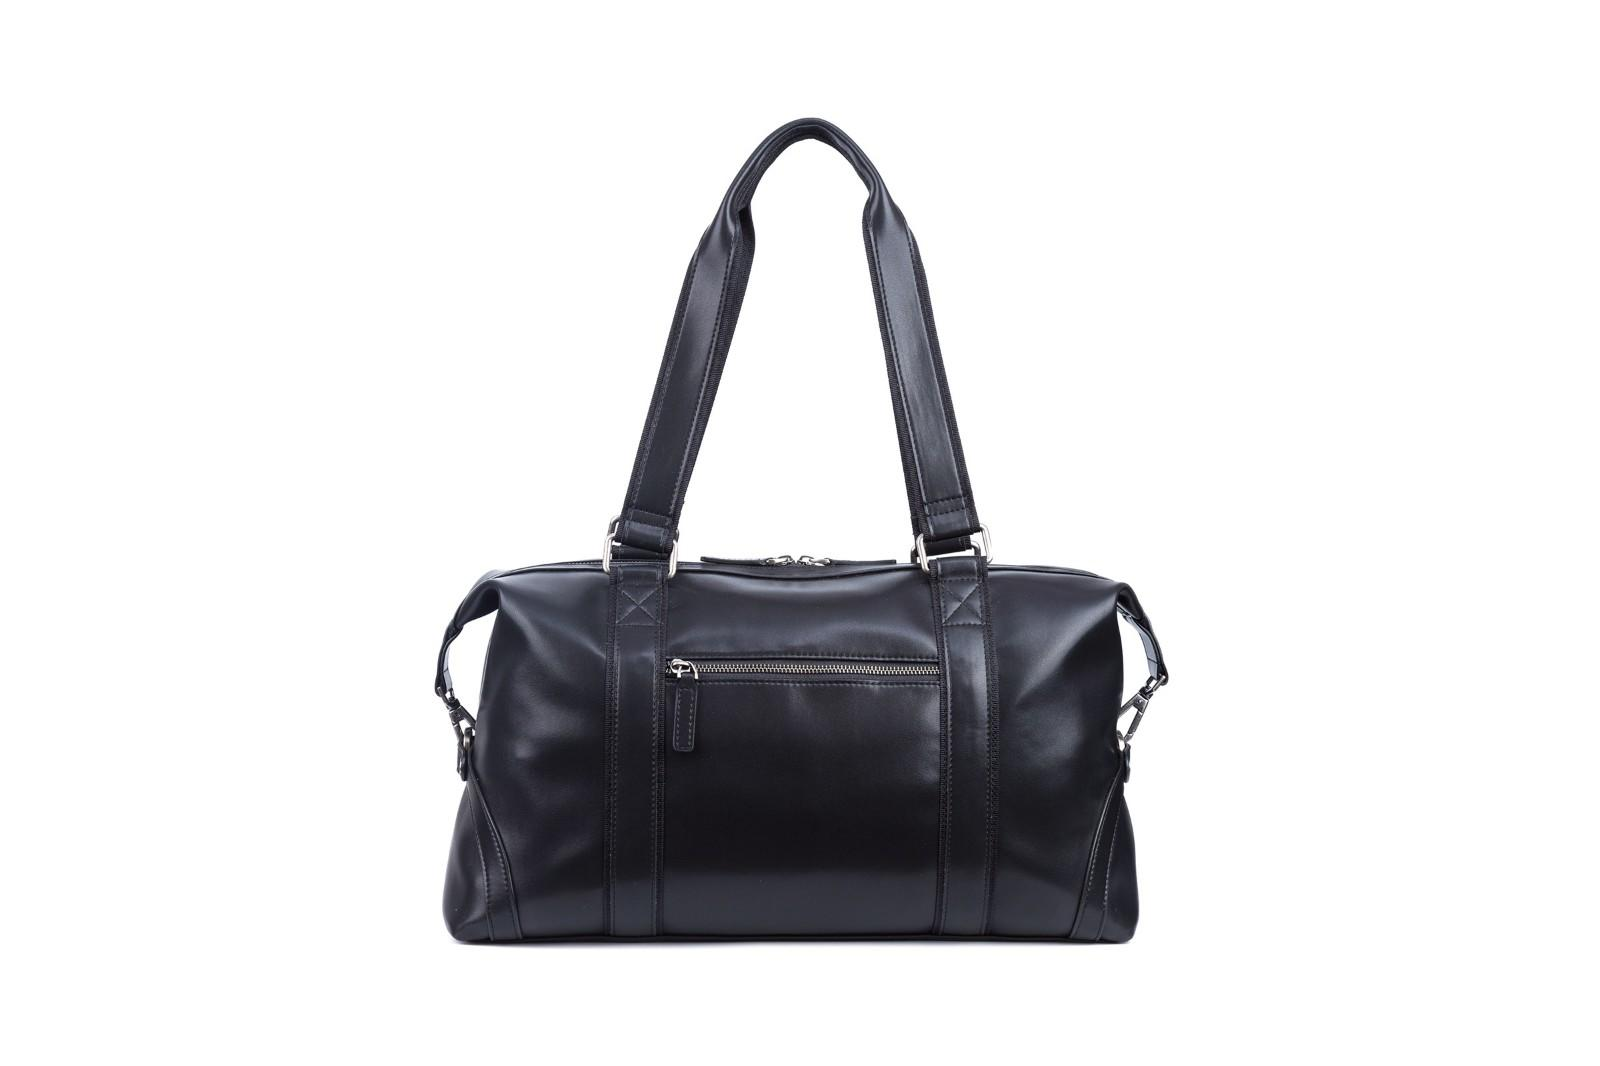 weekend duffle bag mens leather for boy GF bags-2